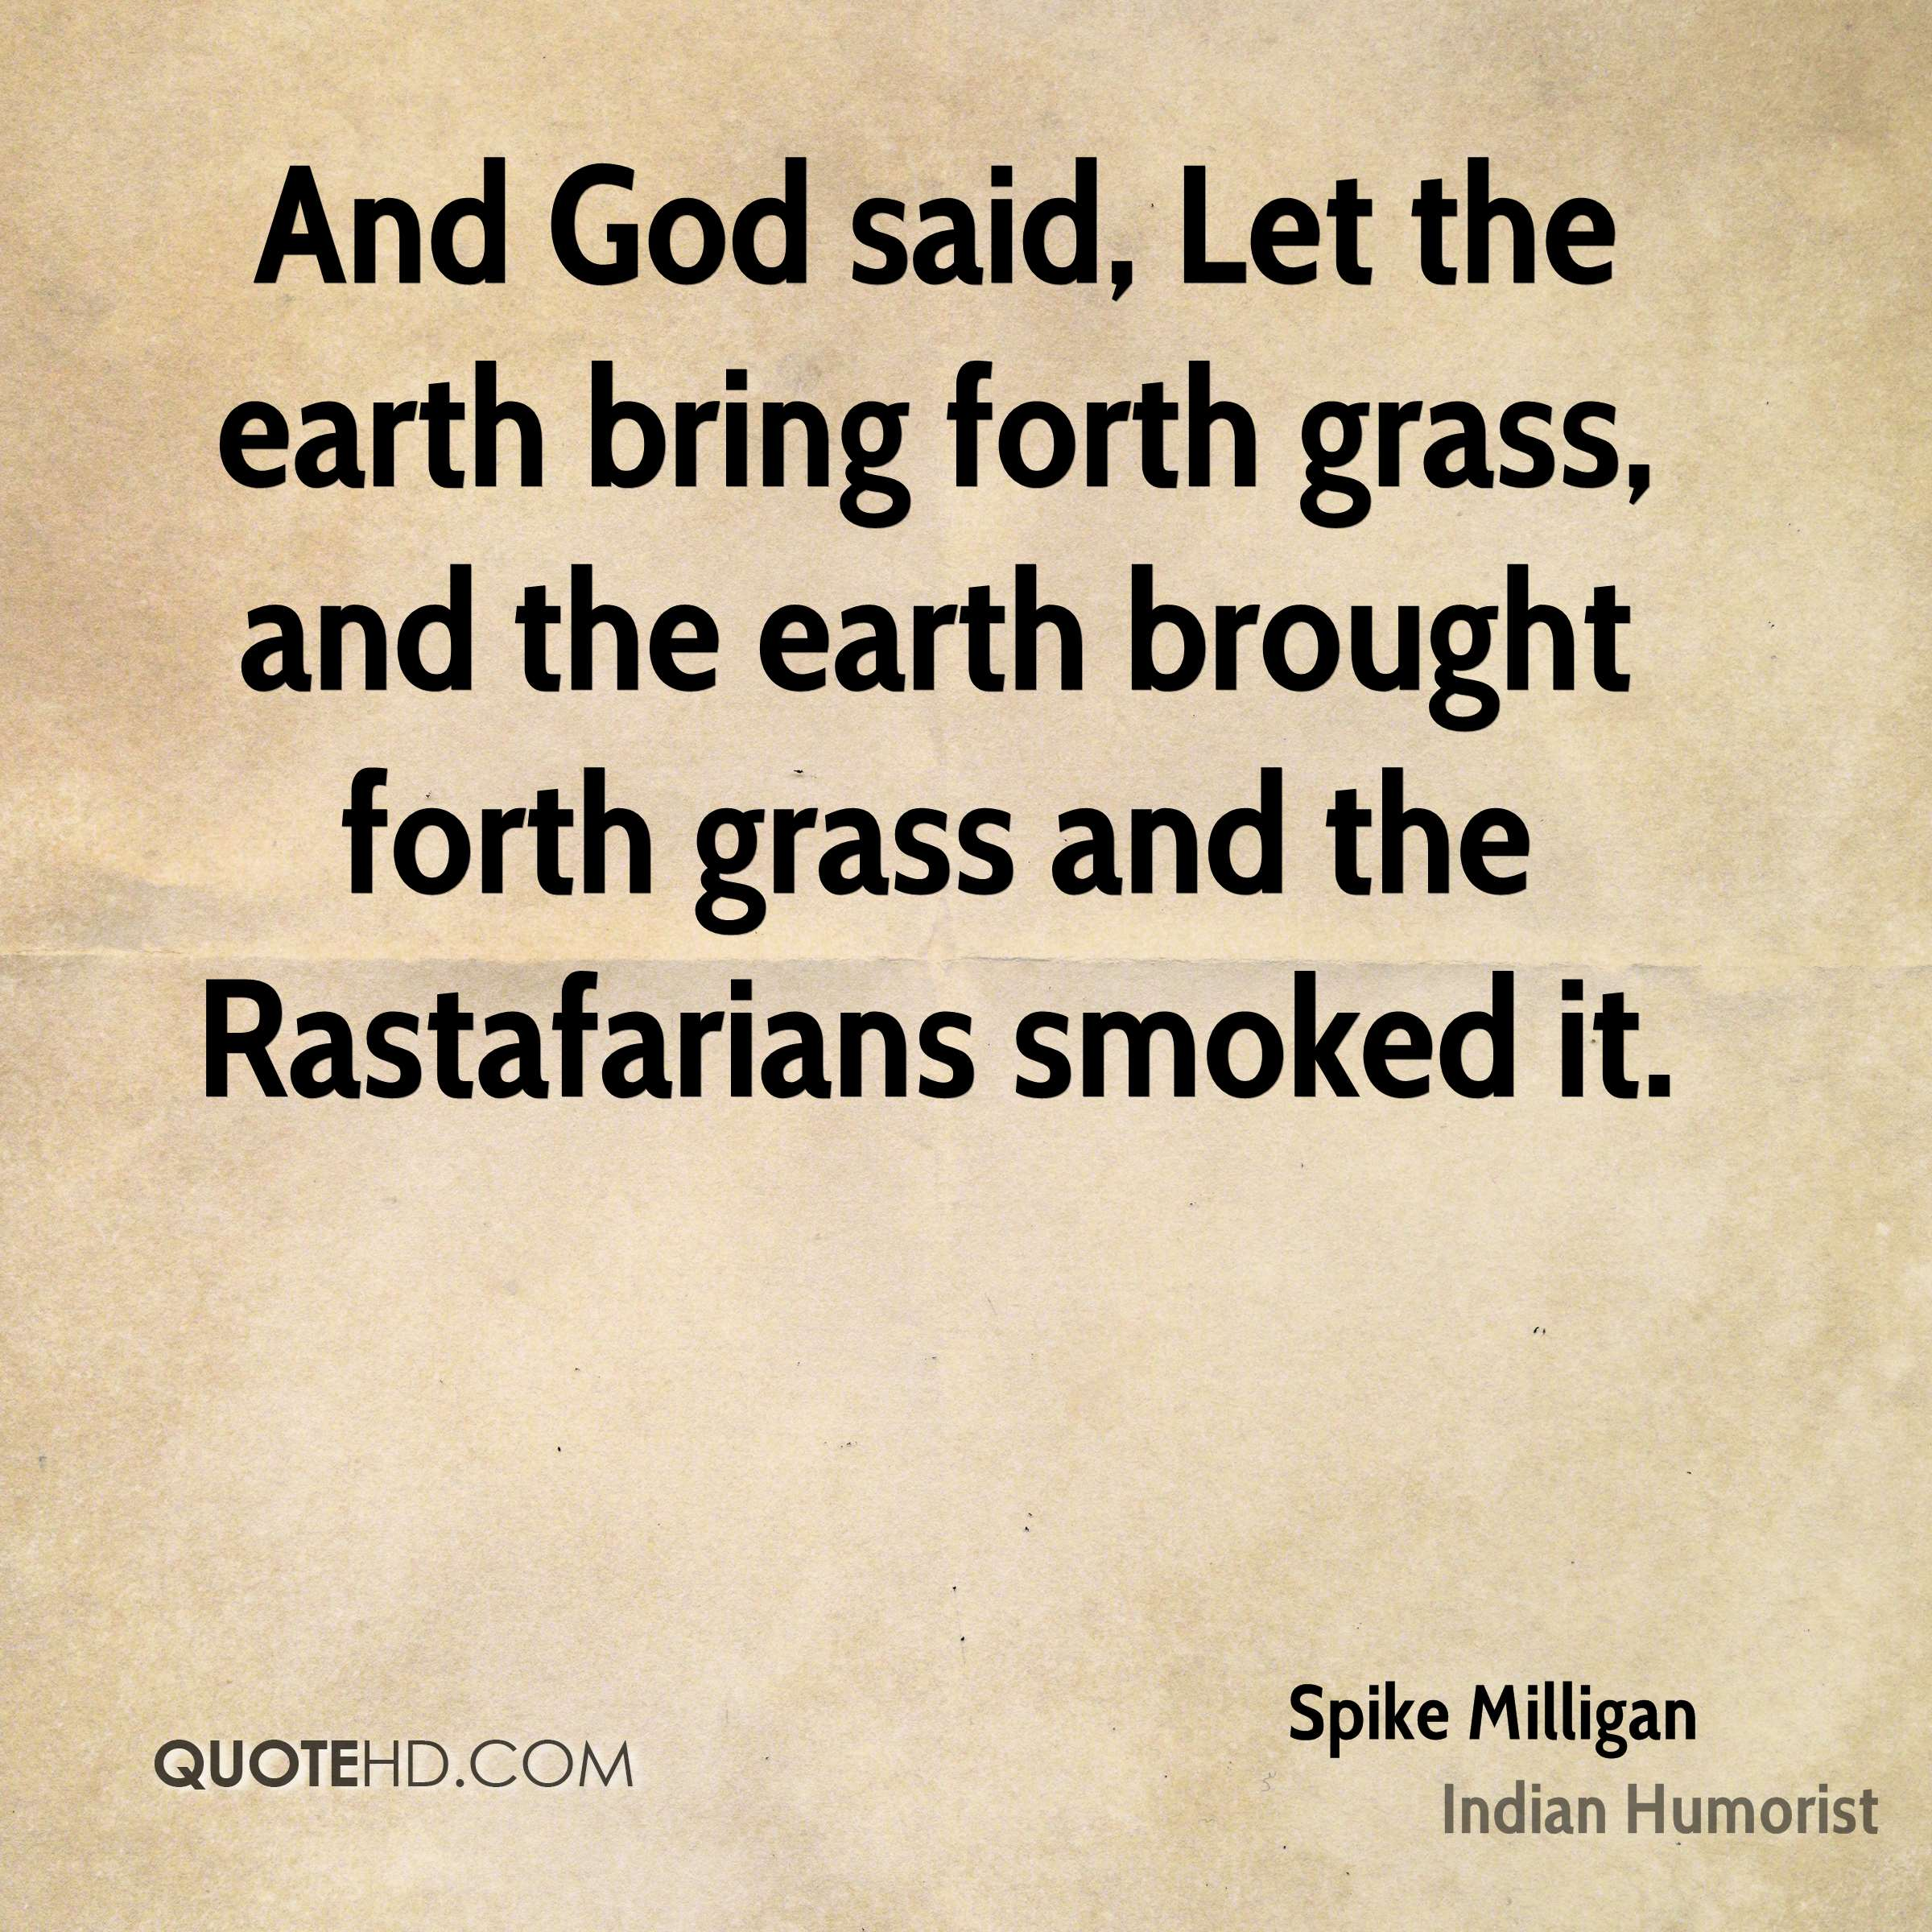 And God said, Let the earth bring forth grass, and the earth brought forth grass and the Rastafarians smoked it.